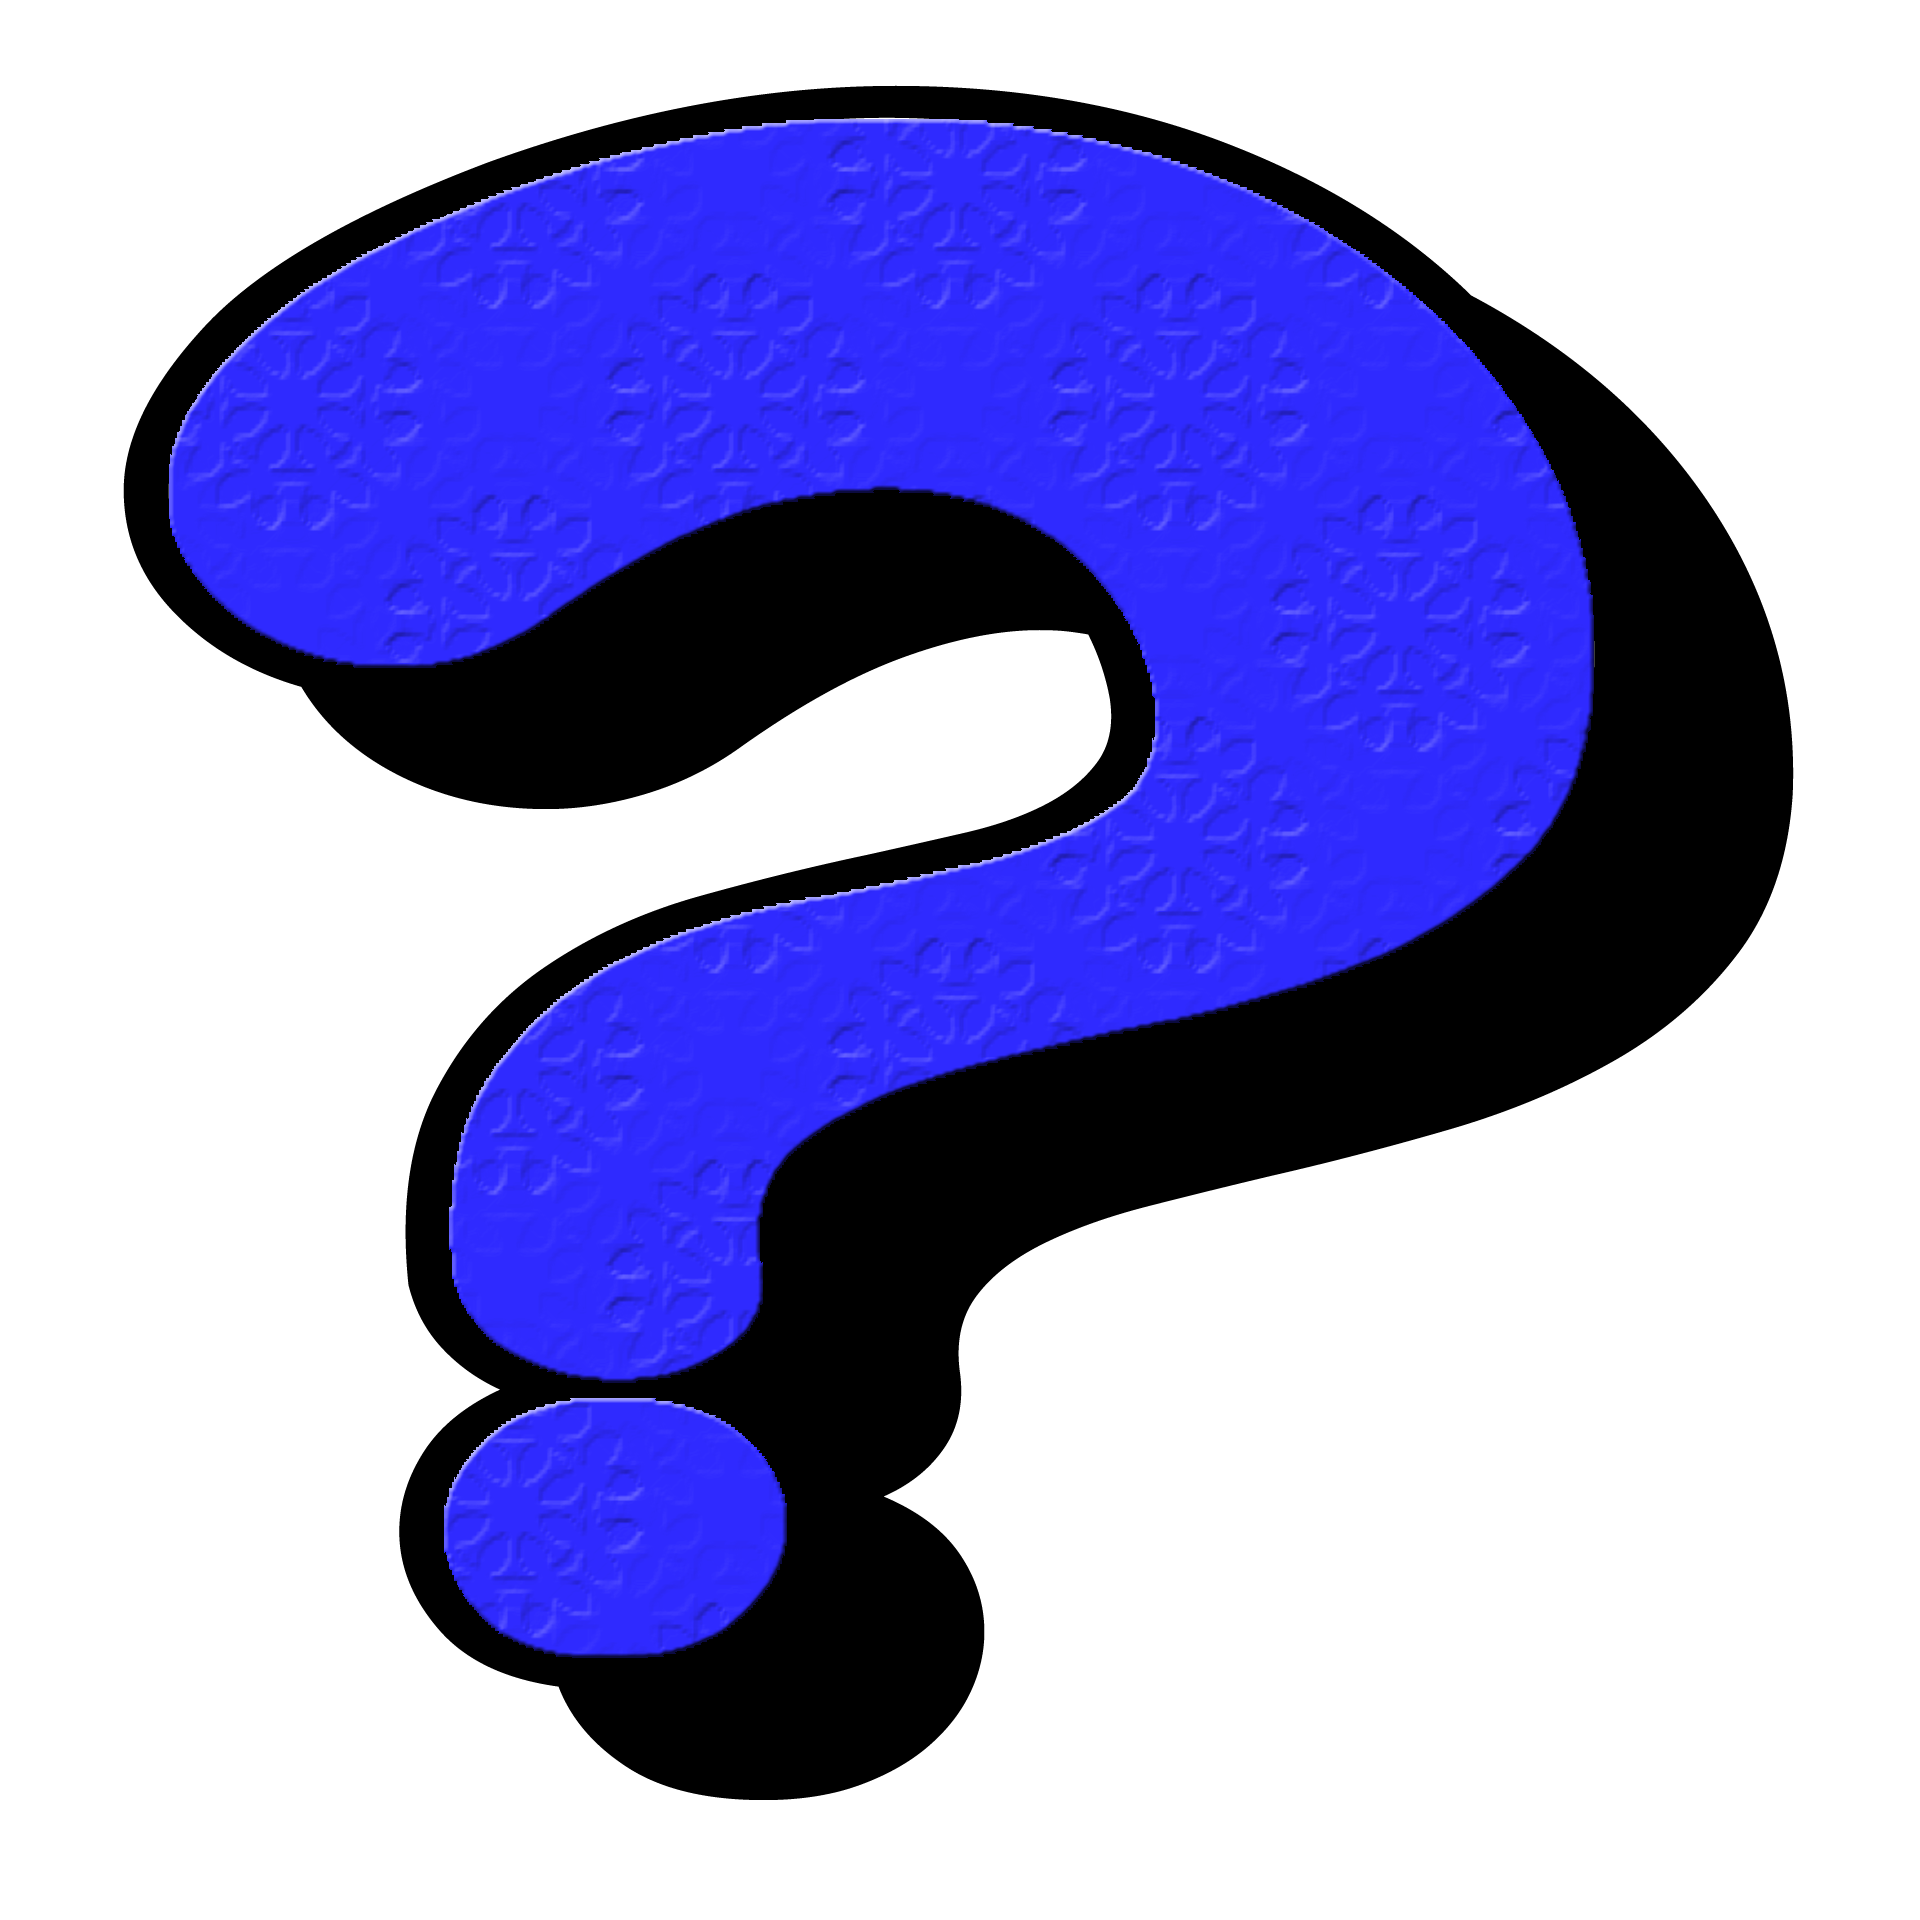 Funny Blue Question Mark Punctuation Symbol Free Image